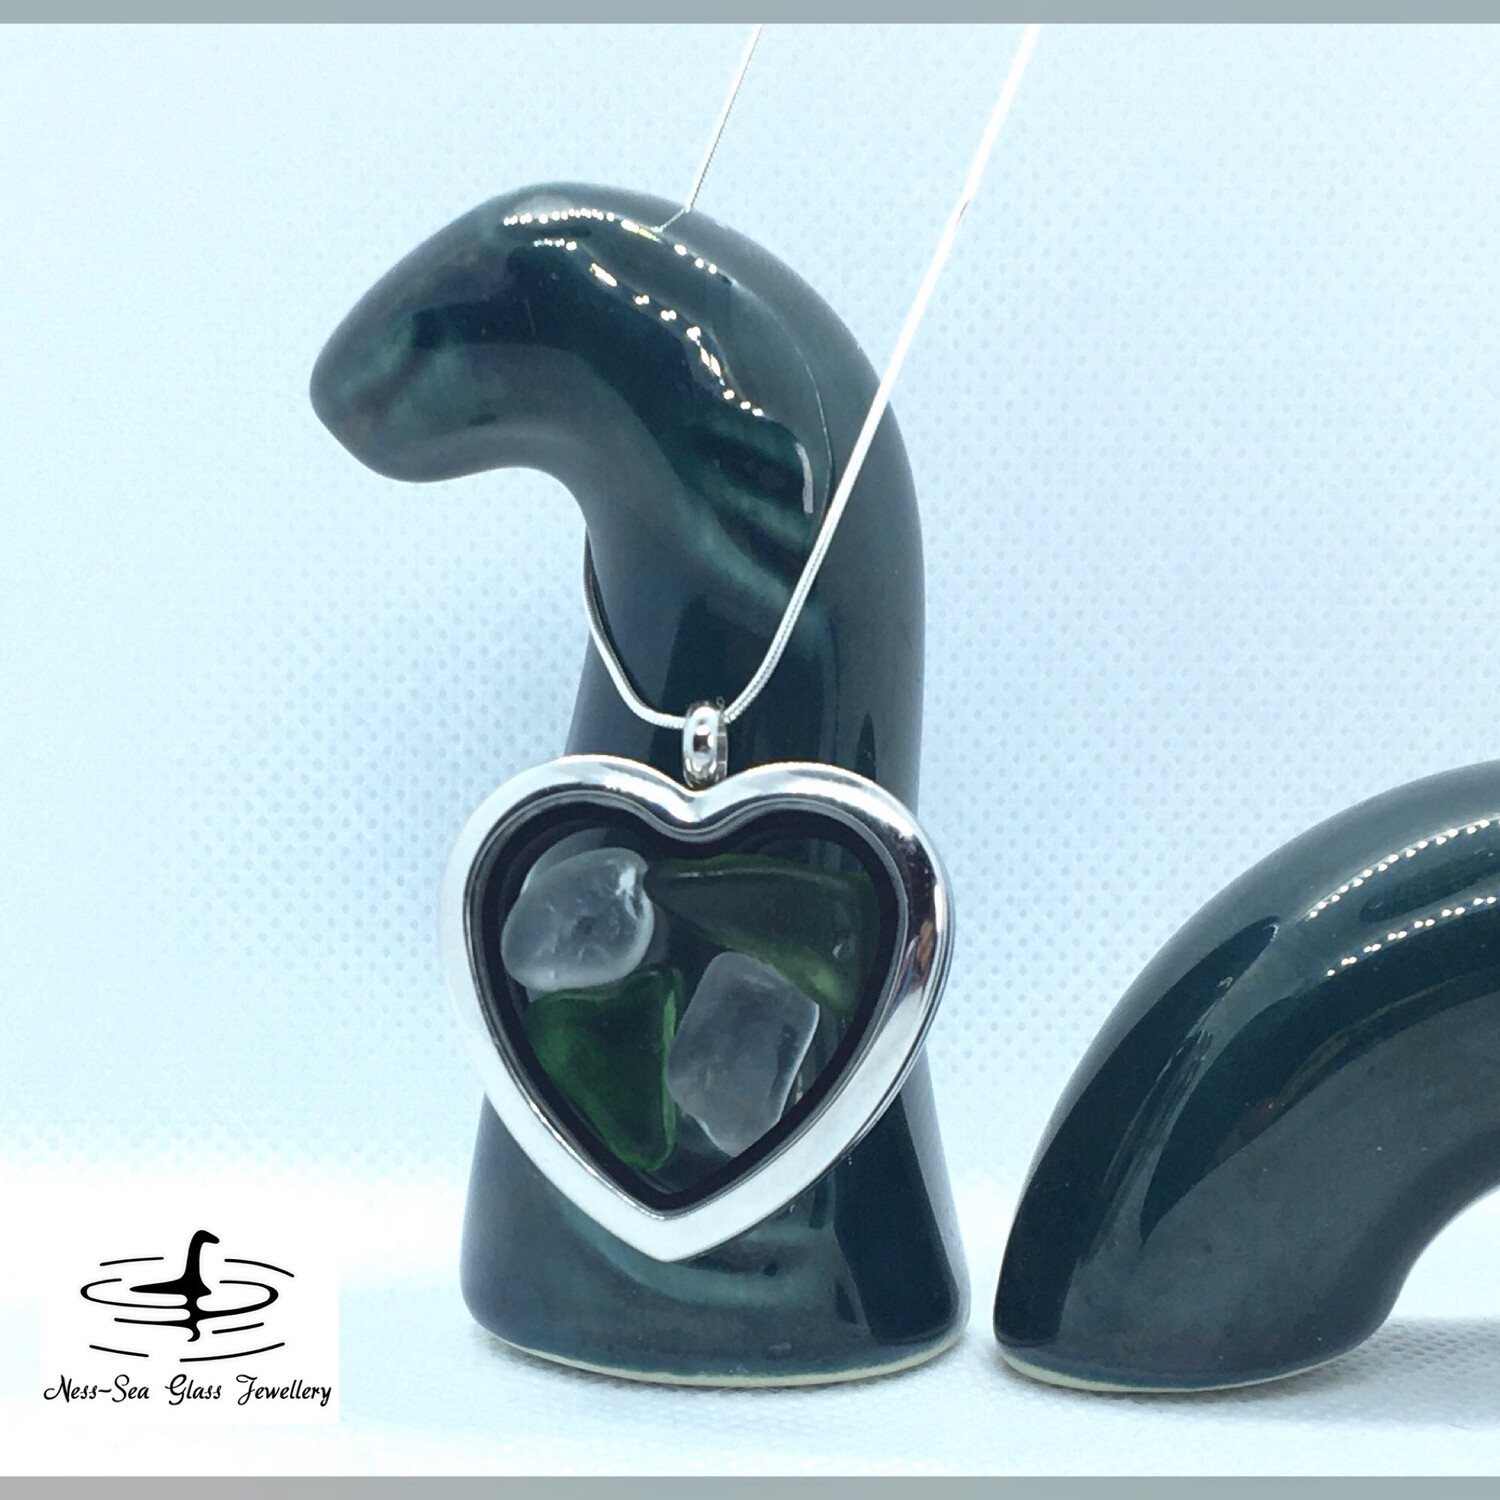 Loch Ness Sea Glass Stainless Steel Heart Shaped Floating Locket Necklace with Sterling Silver Snake Chain